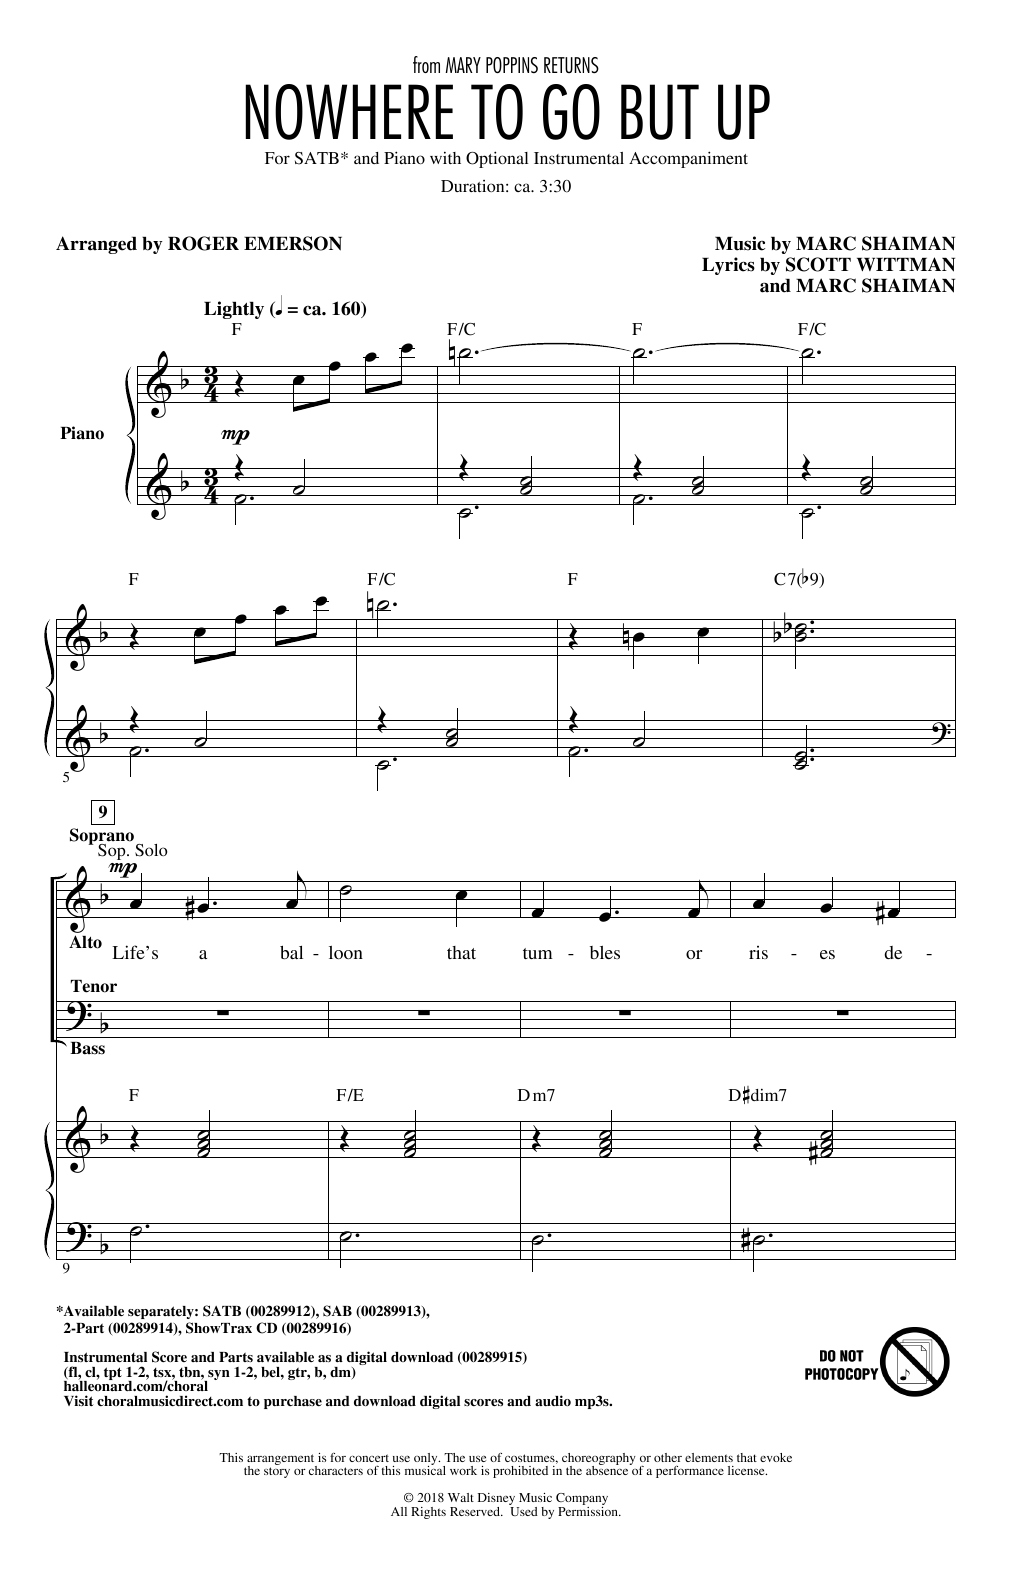 Nowhere To Go But Up (from Mary Poppins Returns) (arr. Roger Emerson) (SATB Choir)